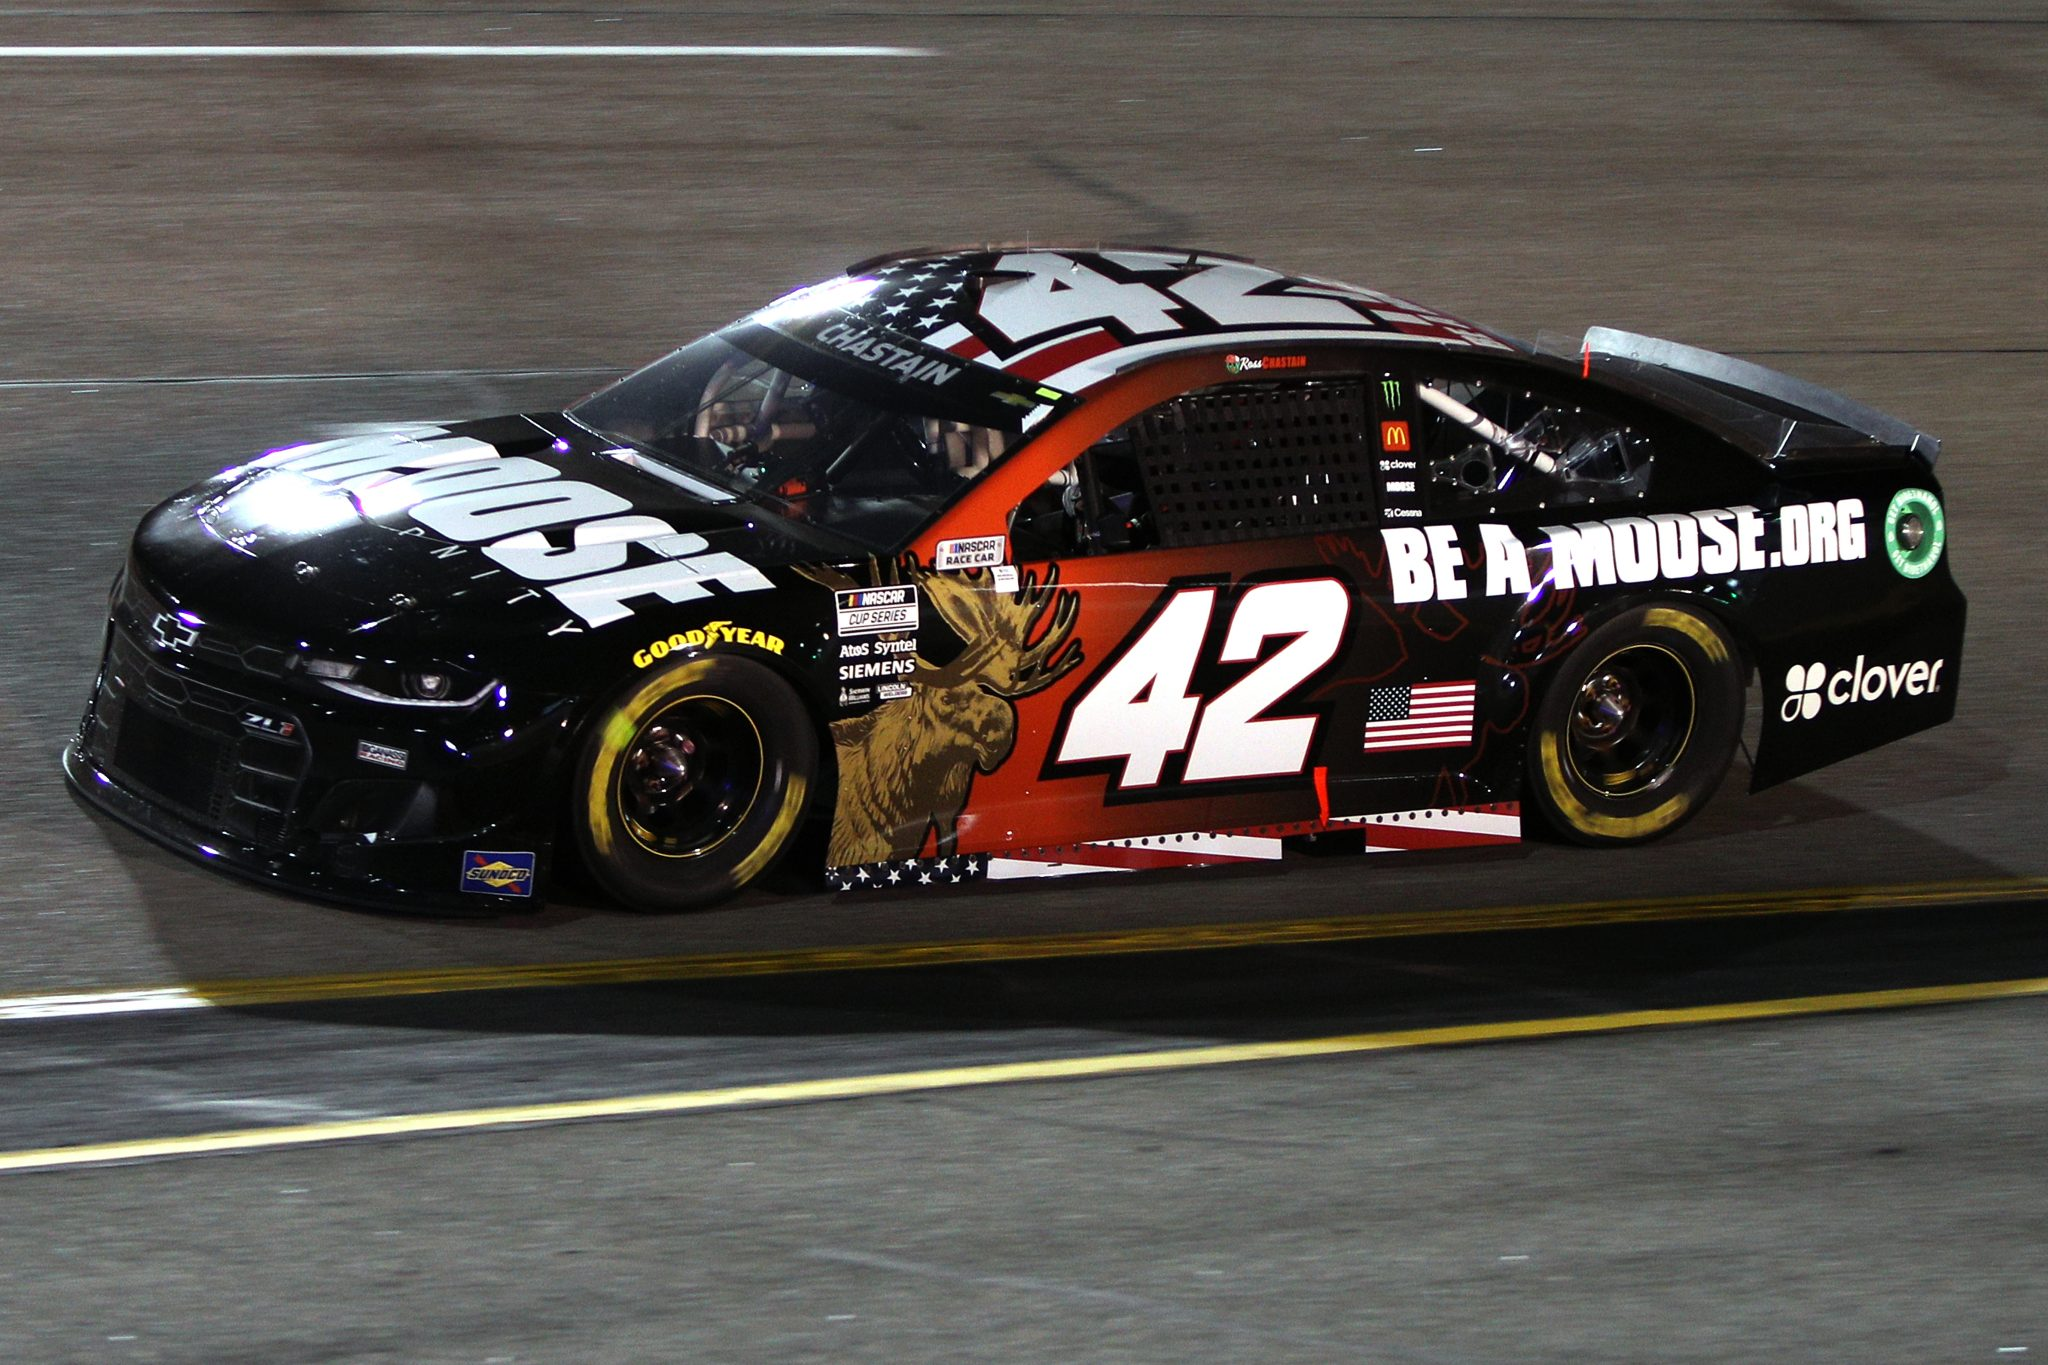 RICHMOND, VIRGINIA - SEPTEMBER 11: Ross Chastain, driver of the #42 Moose Fraternity Chevrolet, drives during the NASCAR Cup Series Federated Auto Parts 400 Salute to First Responders at Richmond Raceway on September 11, 2021 in Richmond, Virginia. (Photo by Sean Gardner/Getty Images) | Getty Images